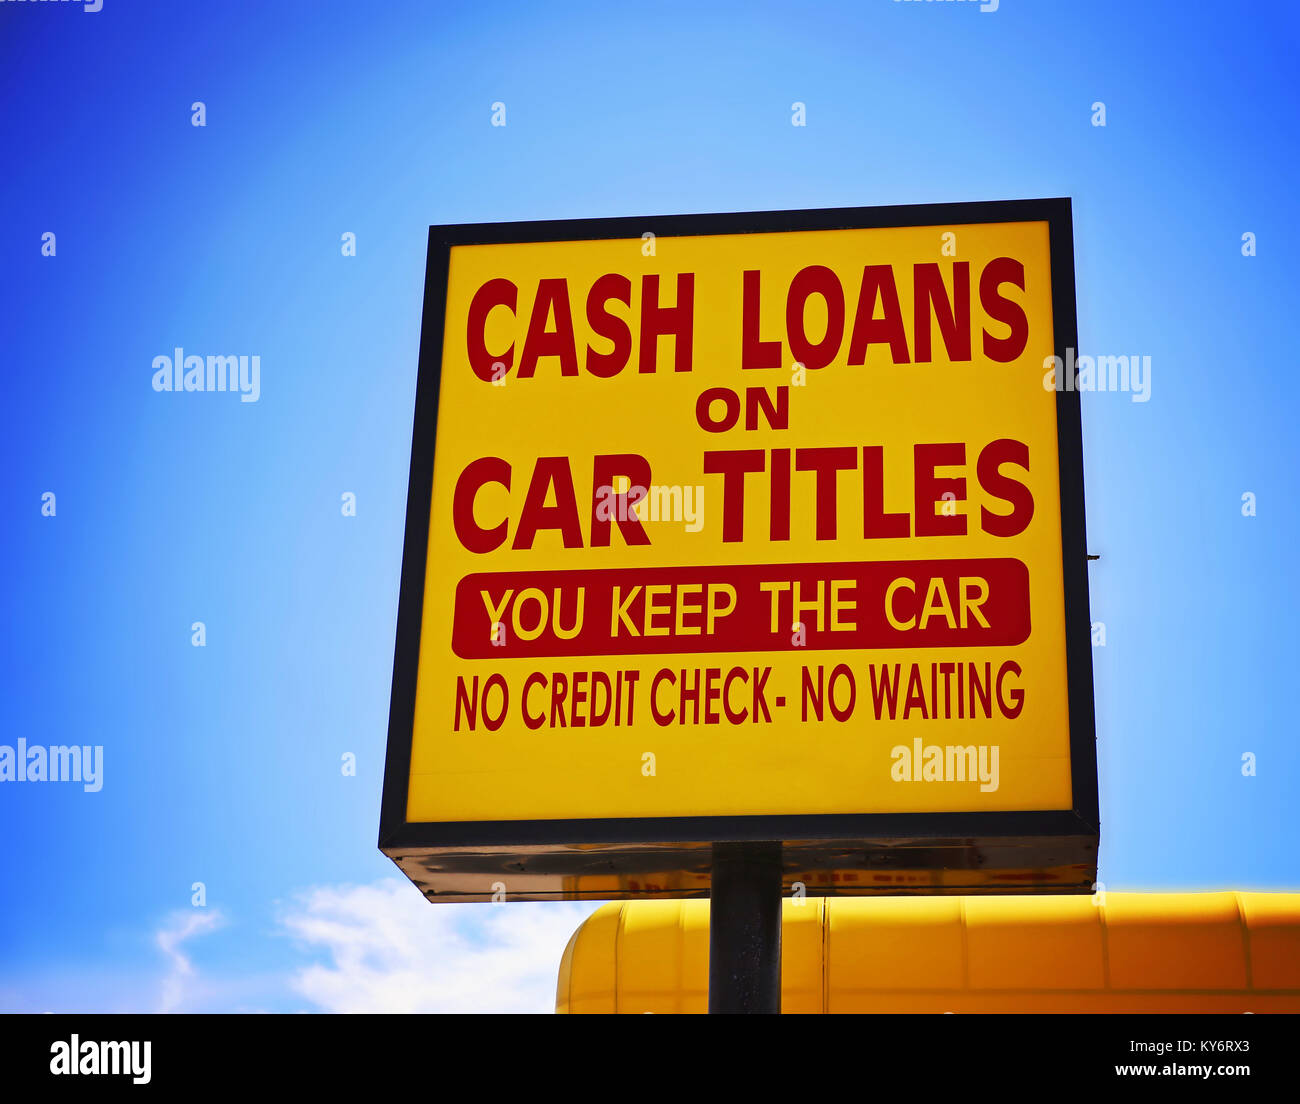 A Cash Loan Or Car Title Loan Sign In The Summer Time Toned With A